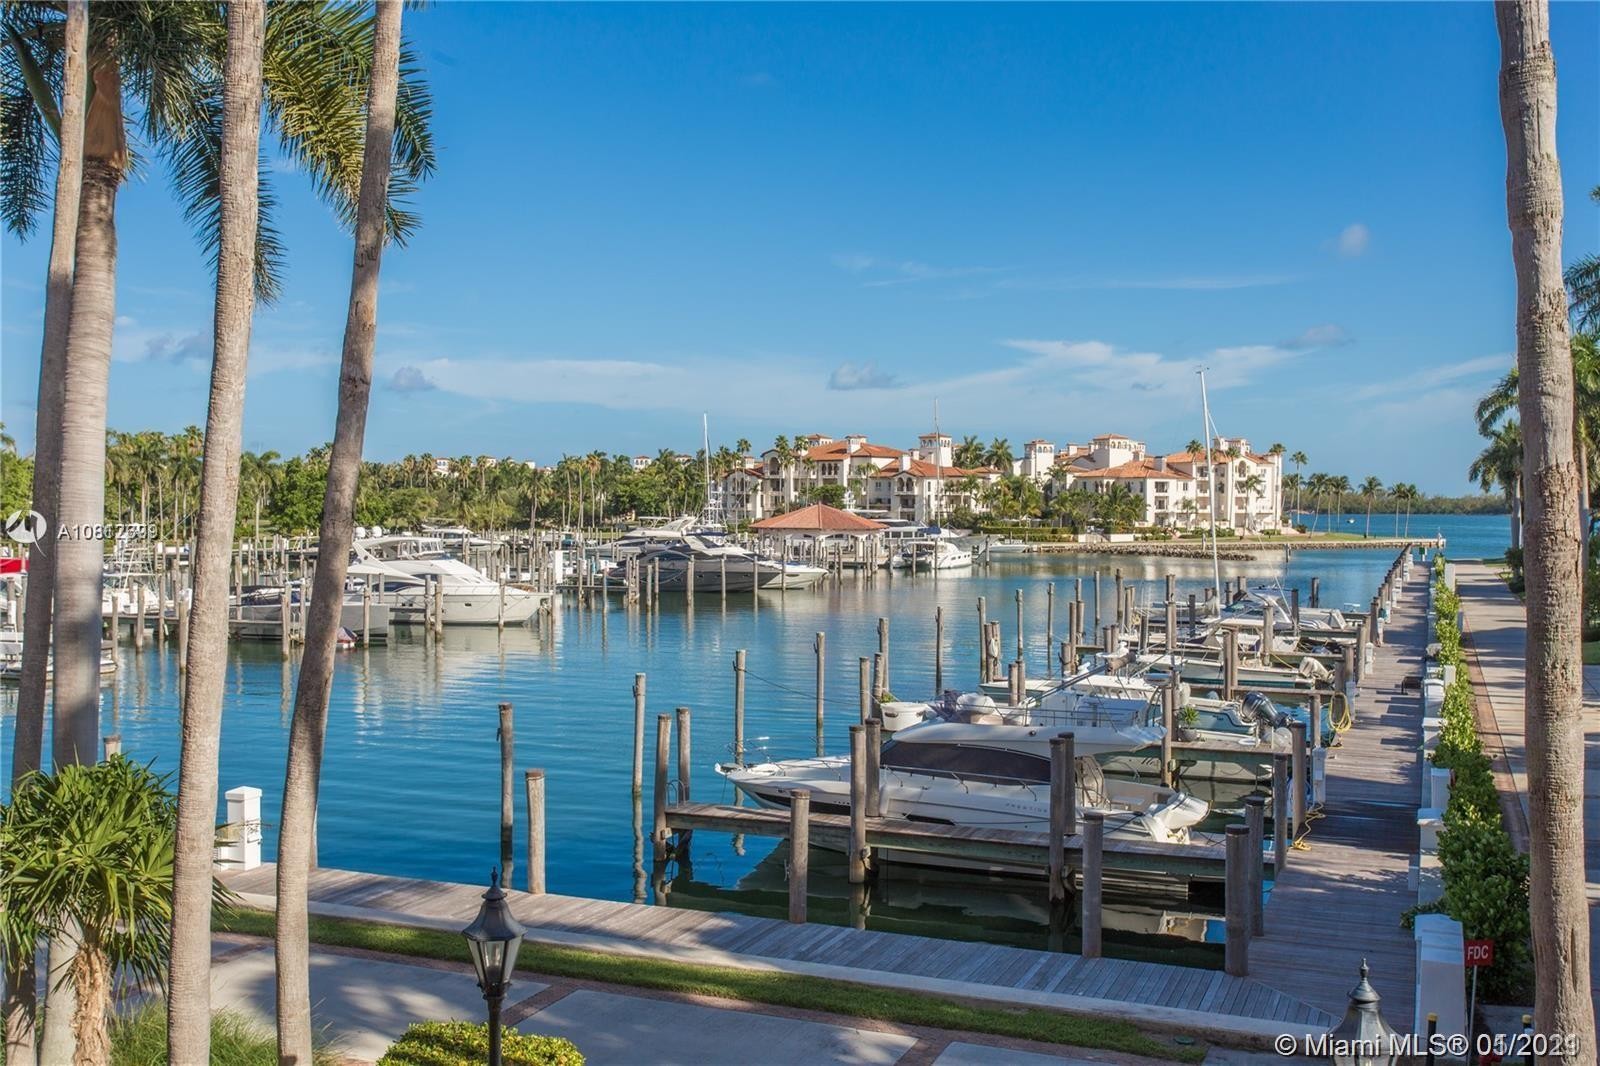 42207 Fisher Island Dr #42207 Property Photo